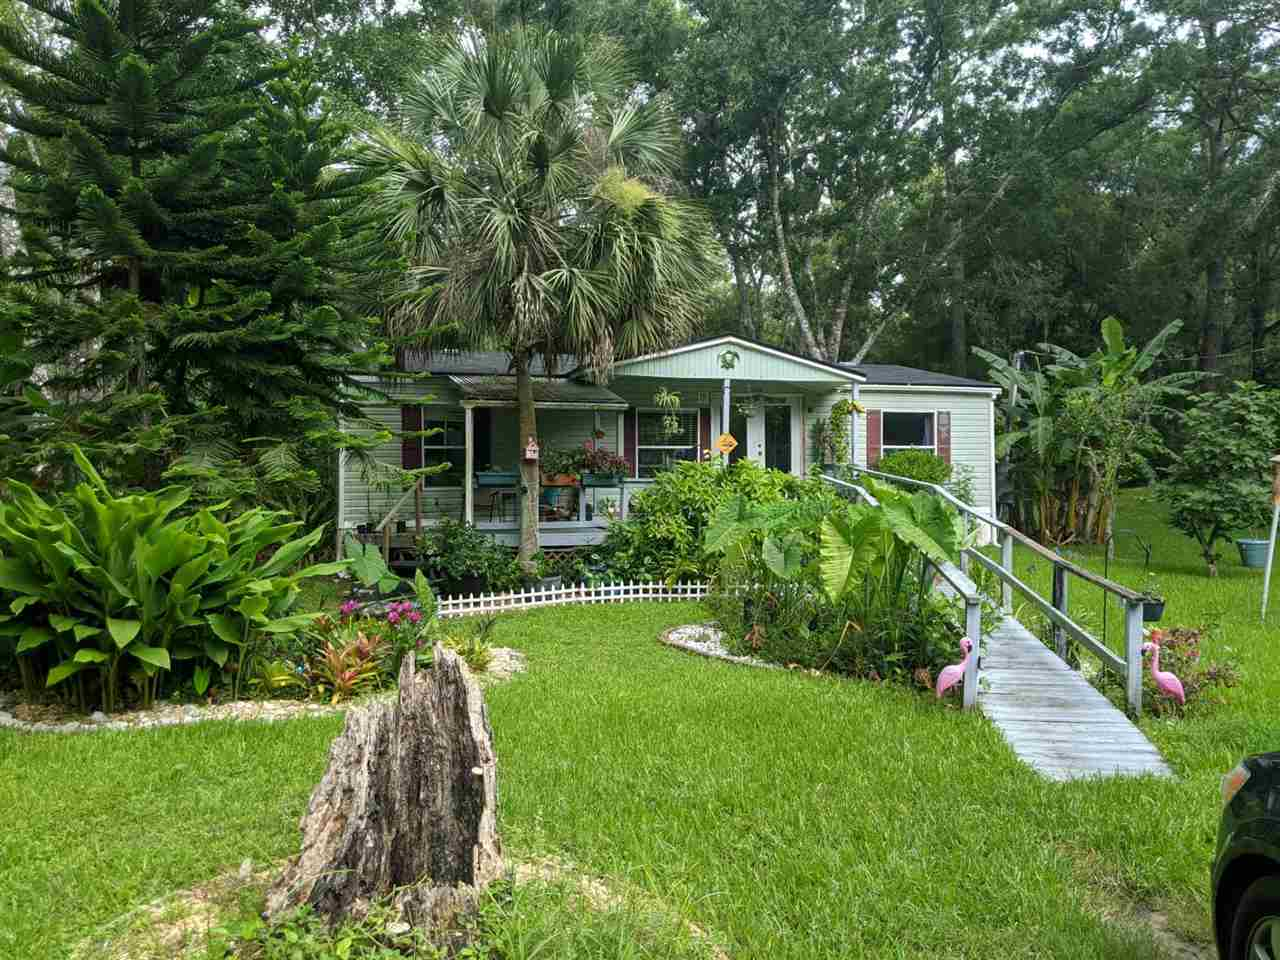 2 very well maintained mobile homes on 2+ acres with gorgeous oaks. Each home is 3 beds 2 baths and both are move in ready. Current tenants have leases through next March.